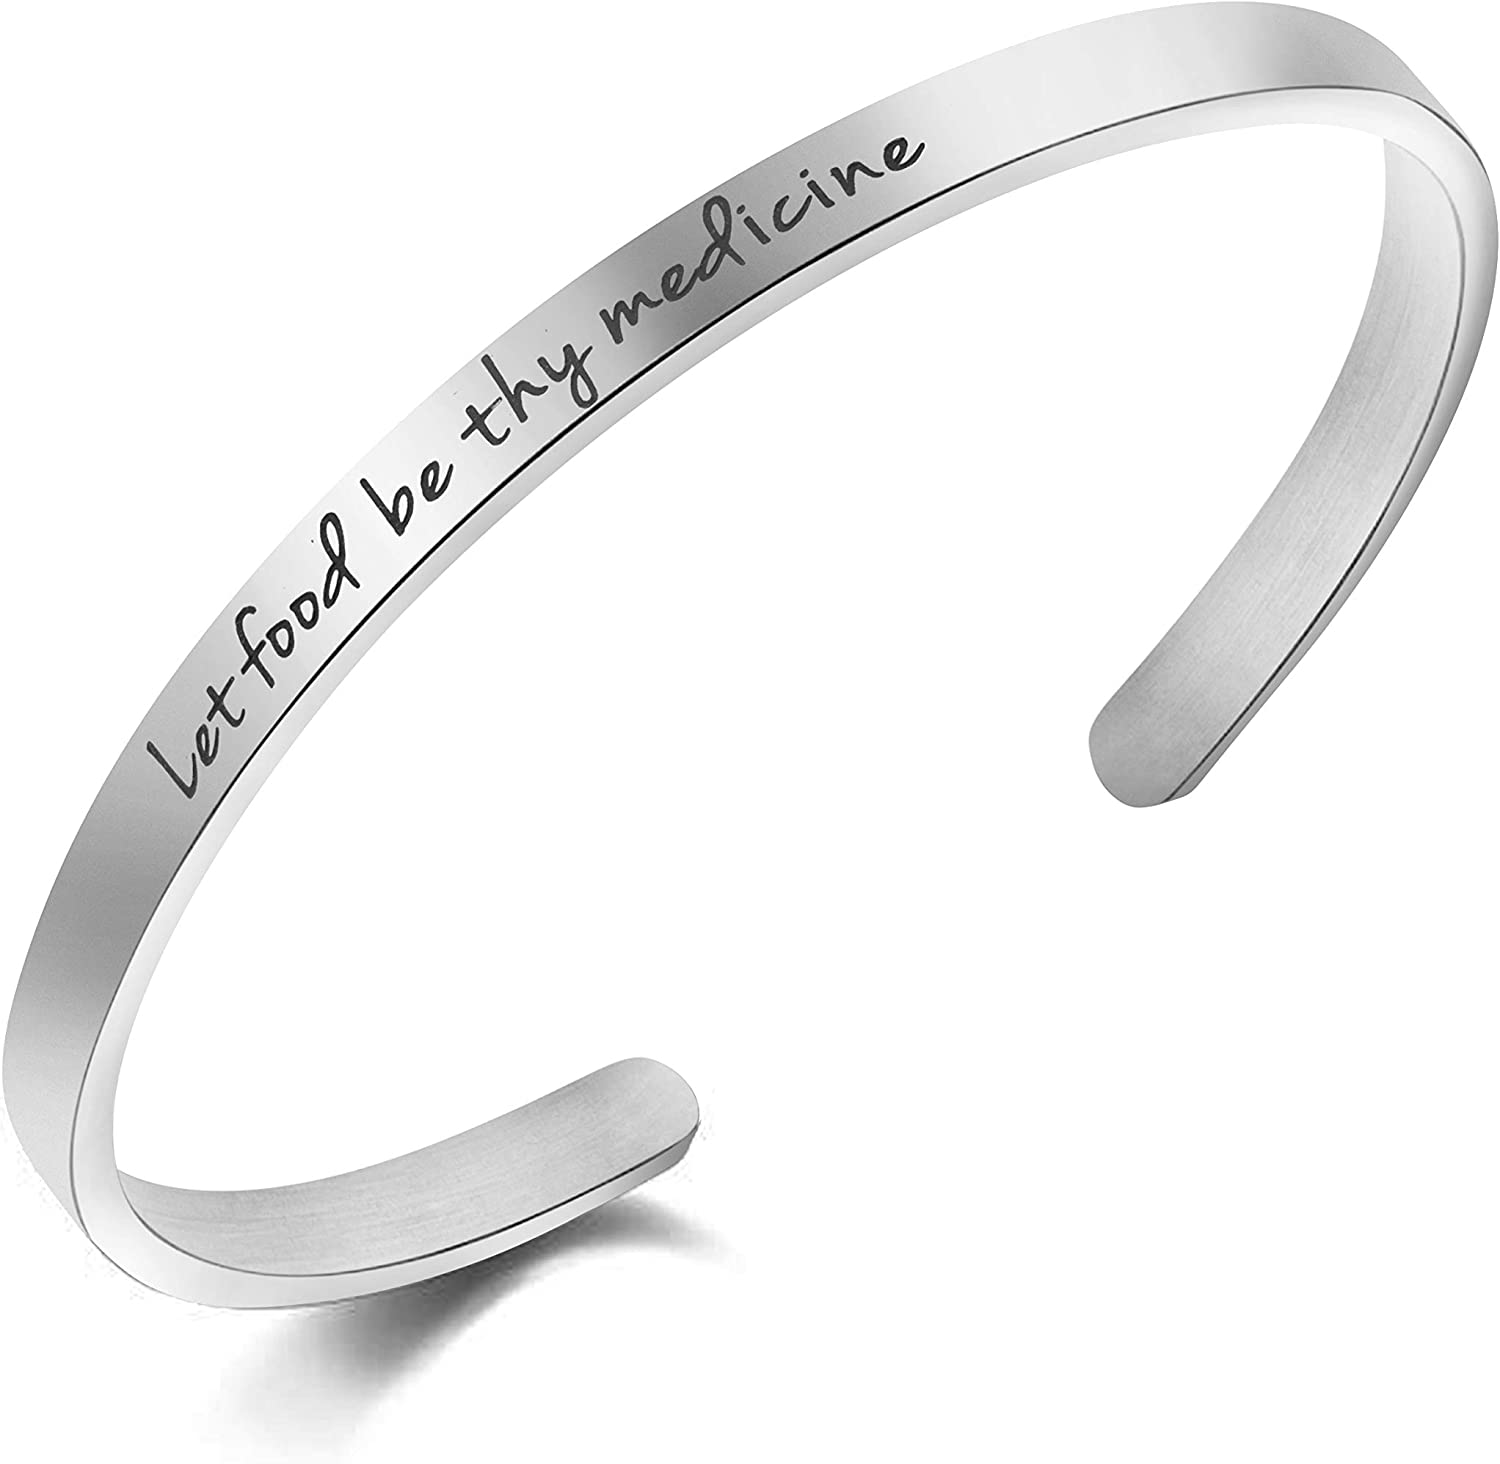 Inspirational Motivational Encouragement Cuff Bracelet for Women Girls Stainless Steel Cuff Jewelry Birthday Mothers Day Christmas Gifts for Mother Daughter Sister